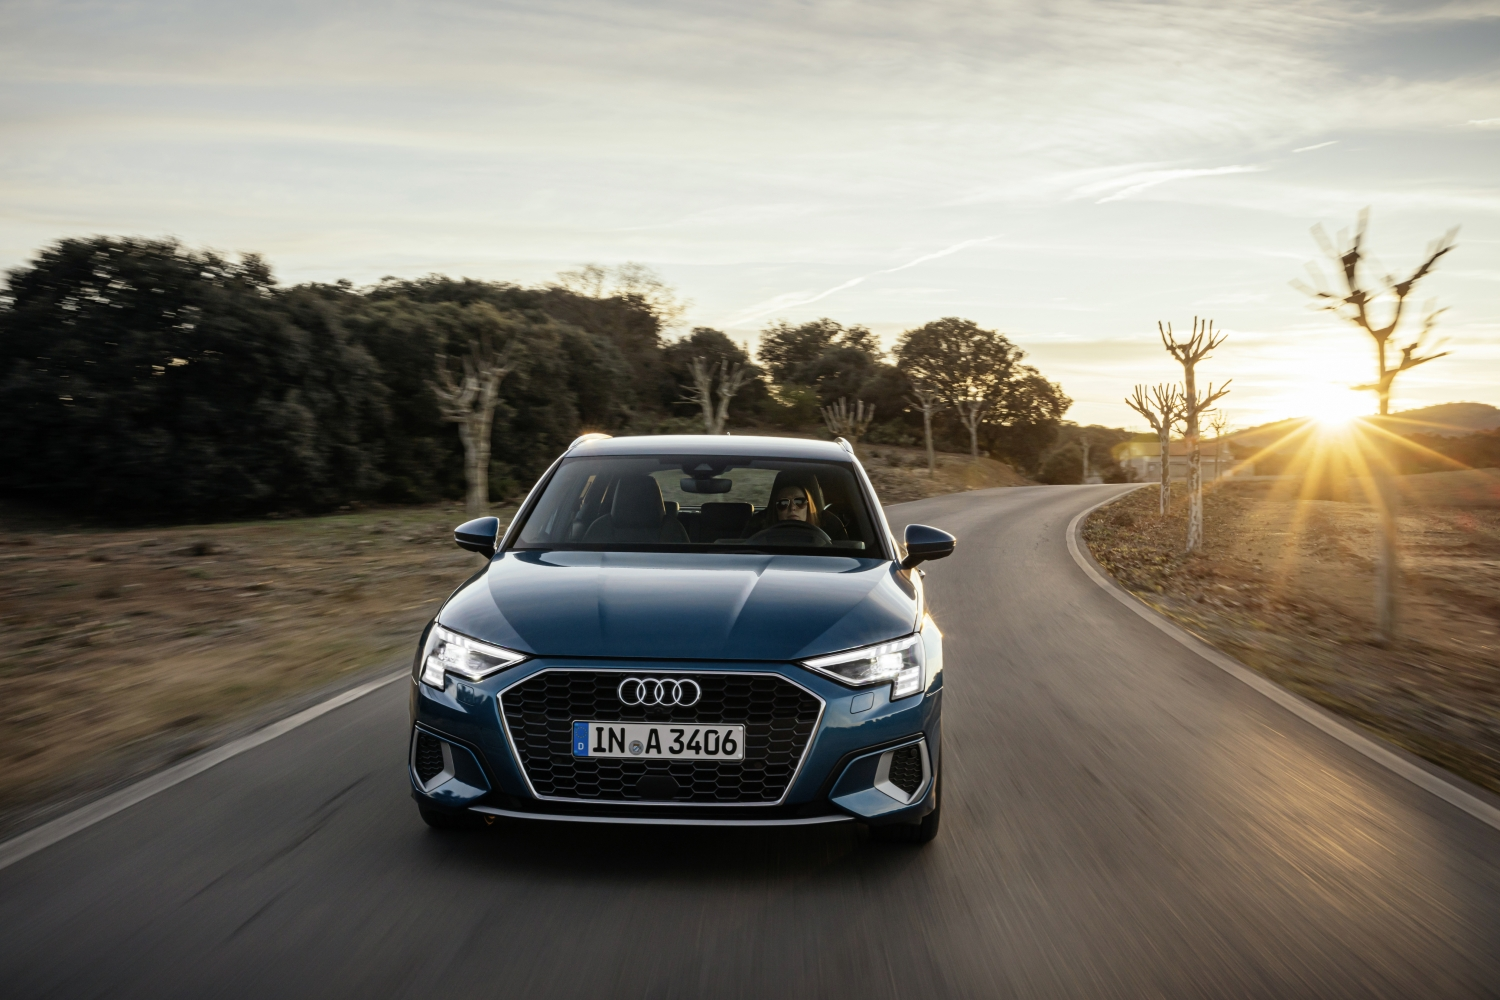 Audi A3 Sportback driving on a country road 2